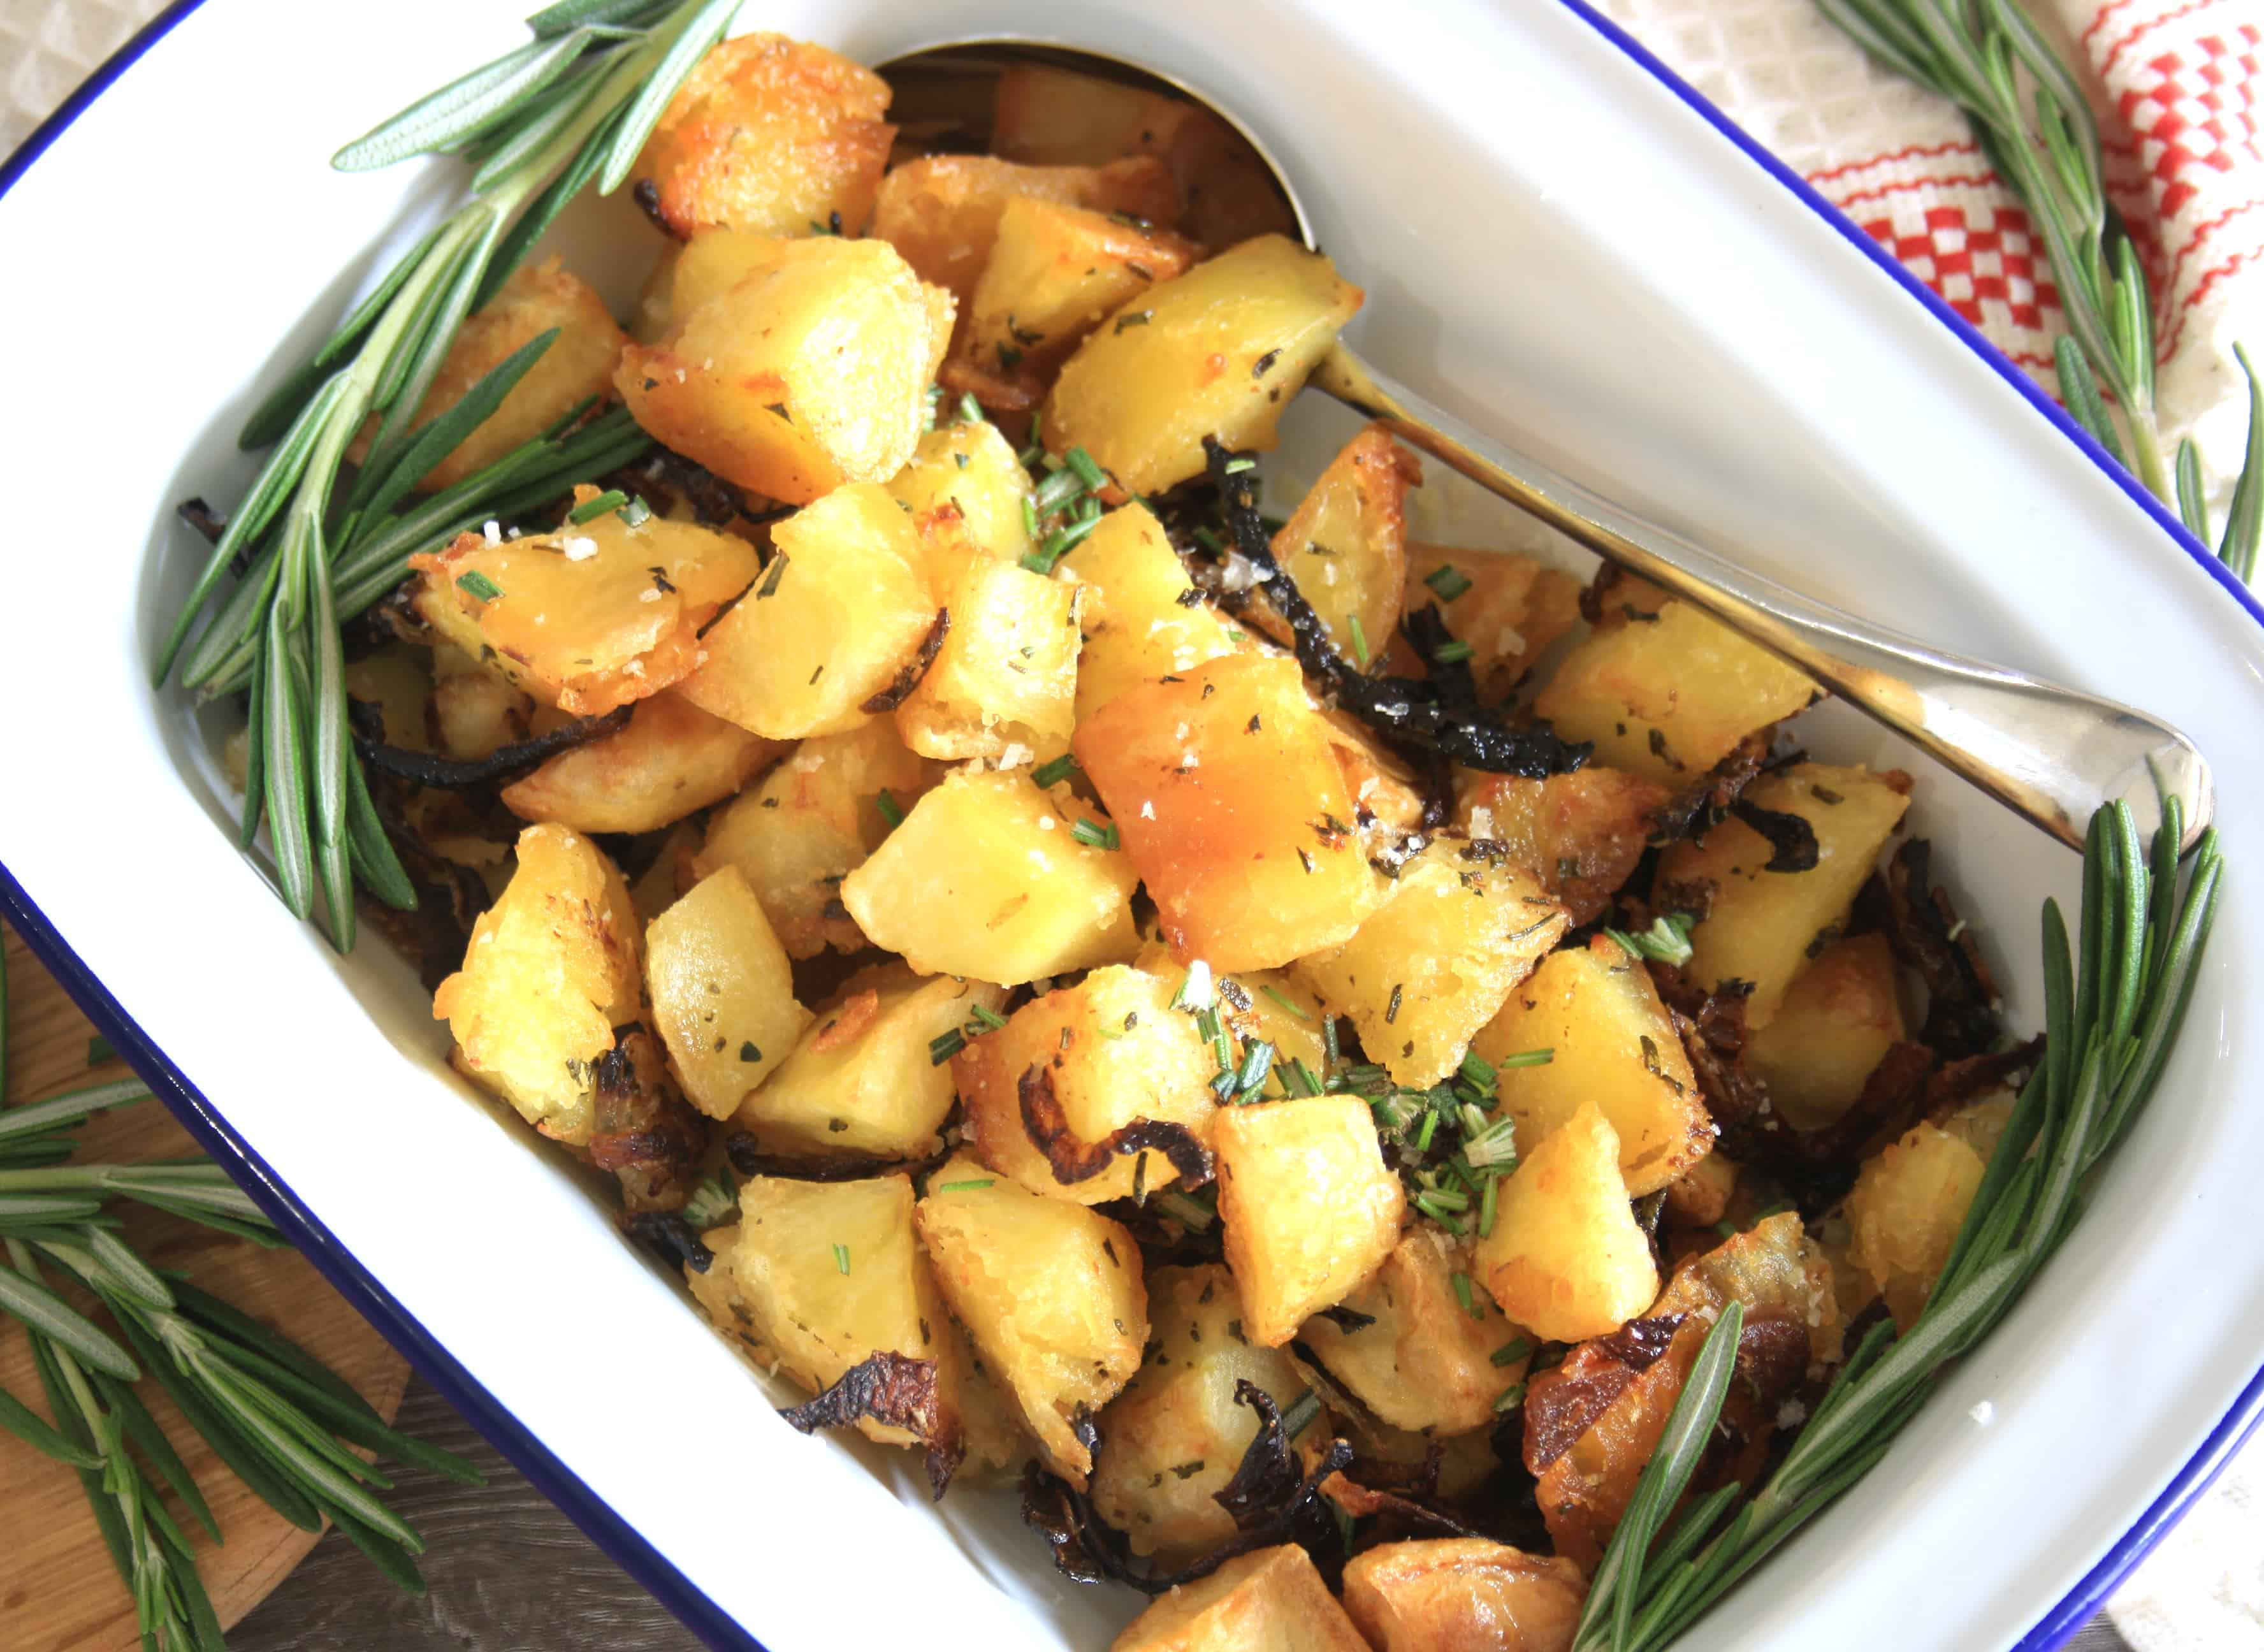 oven dish of cubed parmentier potatoes with rosemary